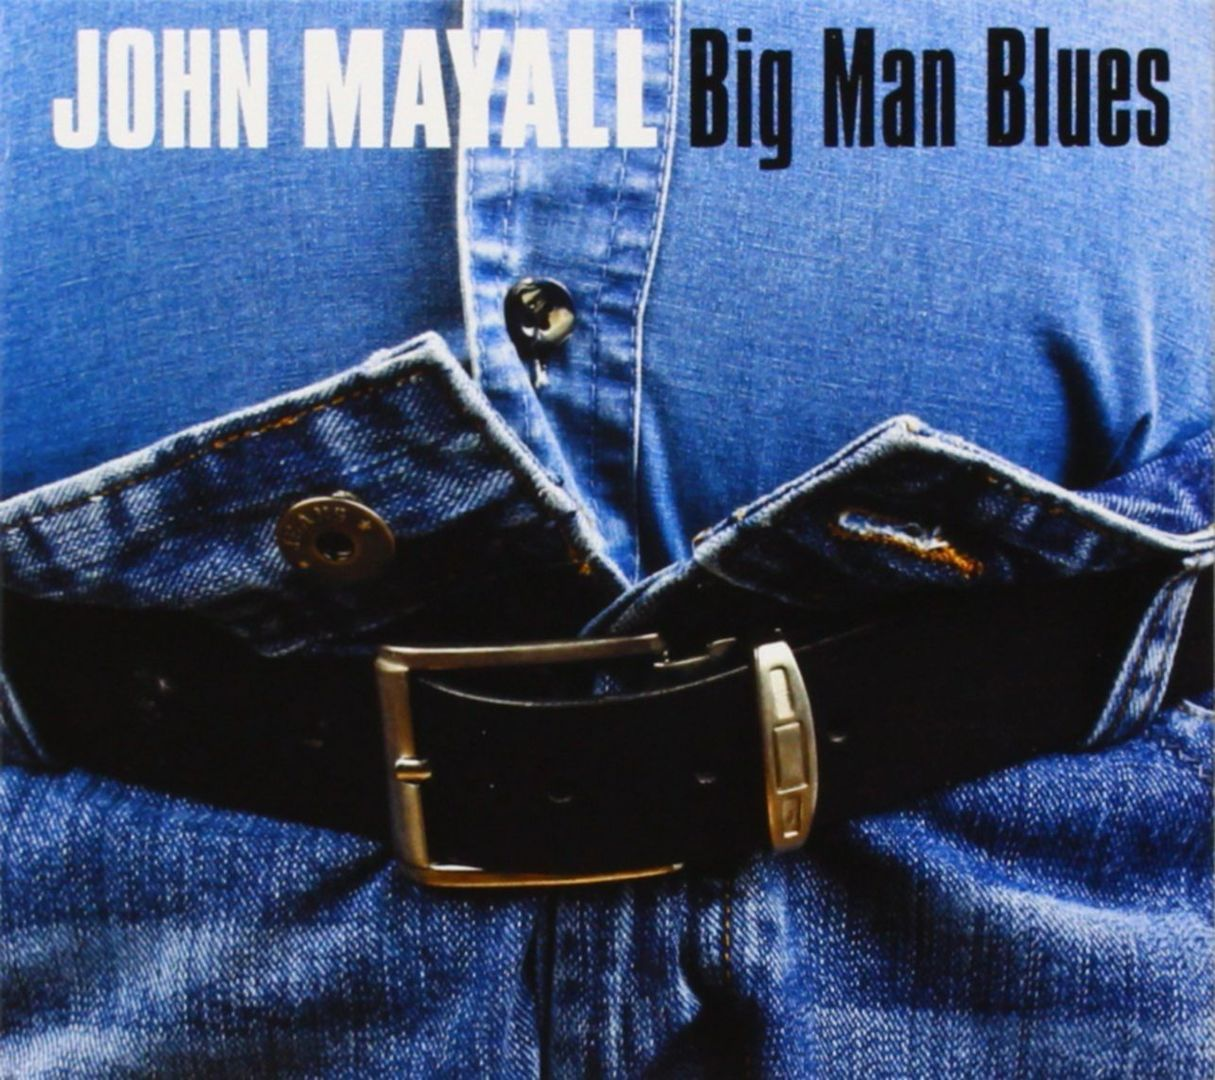 Sonderbar: BIG MAN BLUES (2012)